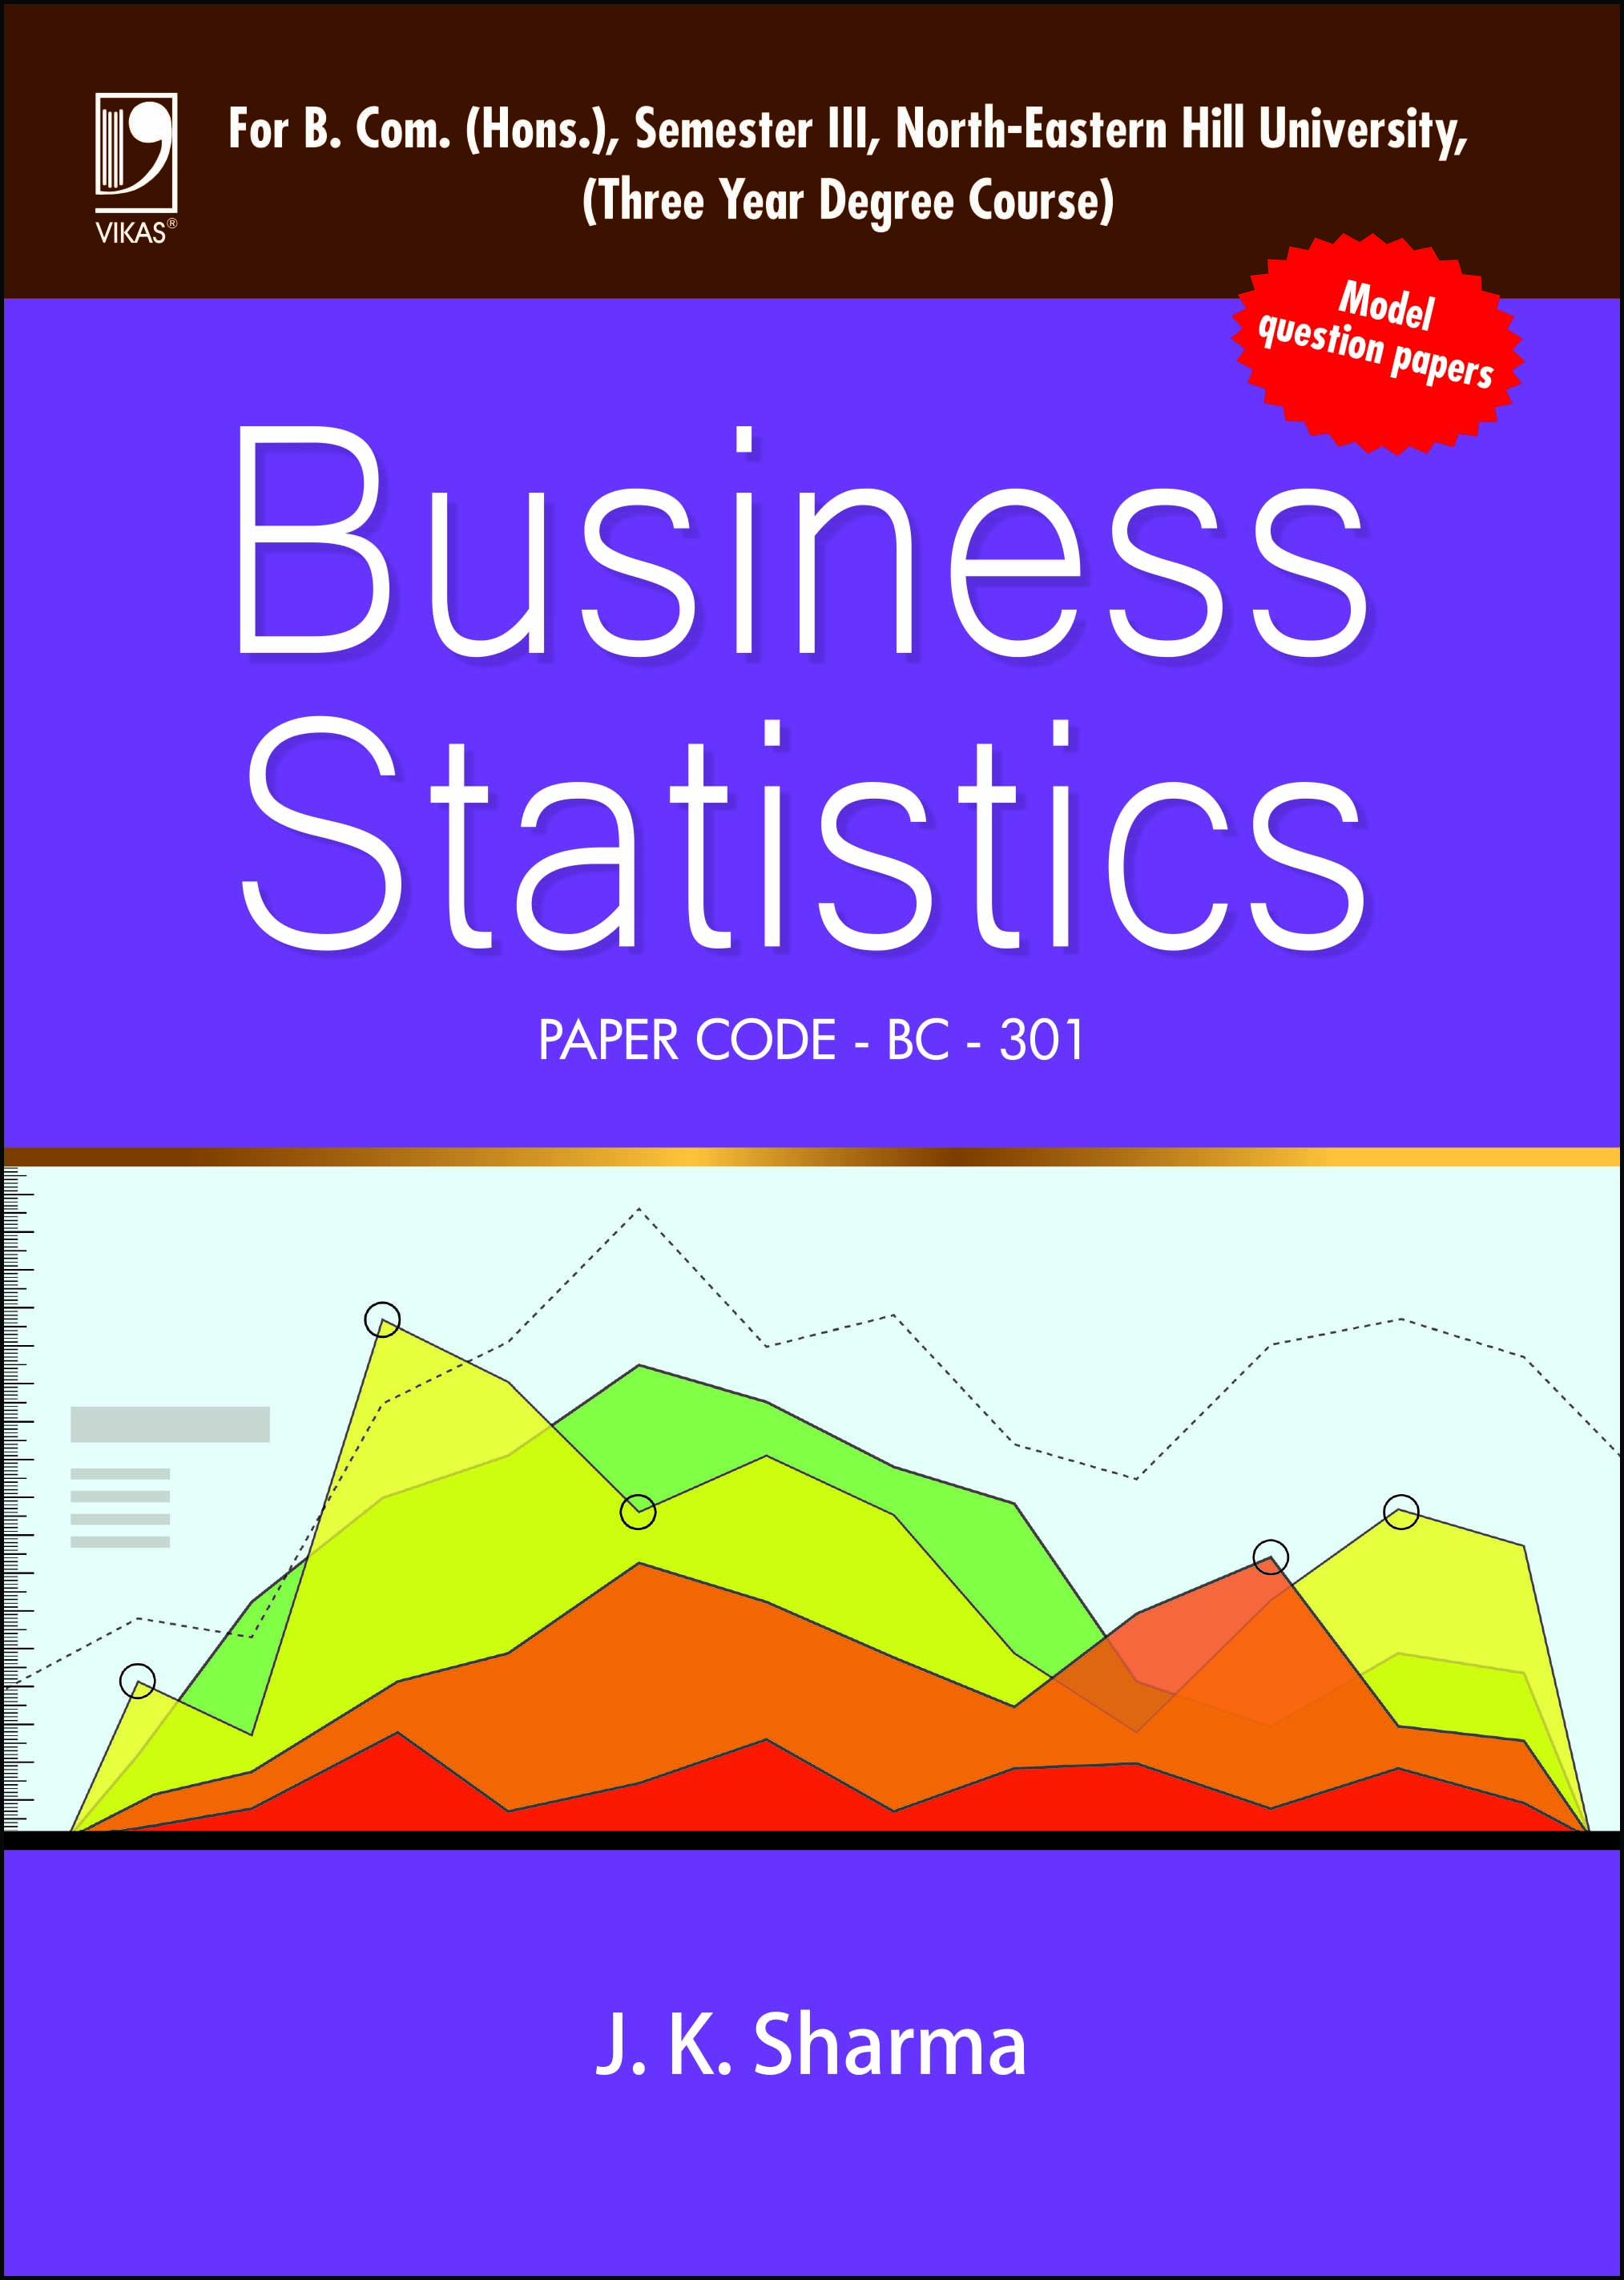 BUSINESS STATISTICS: (FOR NORTH-EASTERN HILL UNIVERSITY)